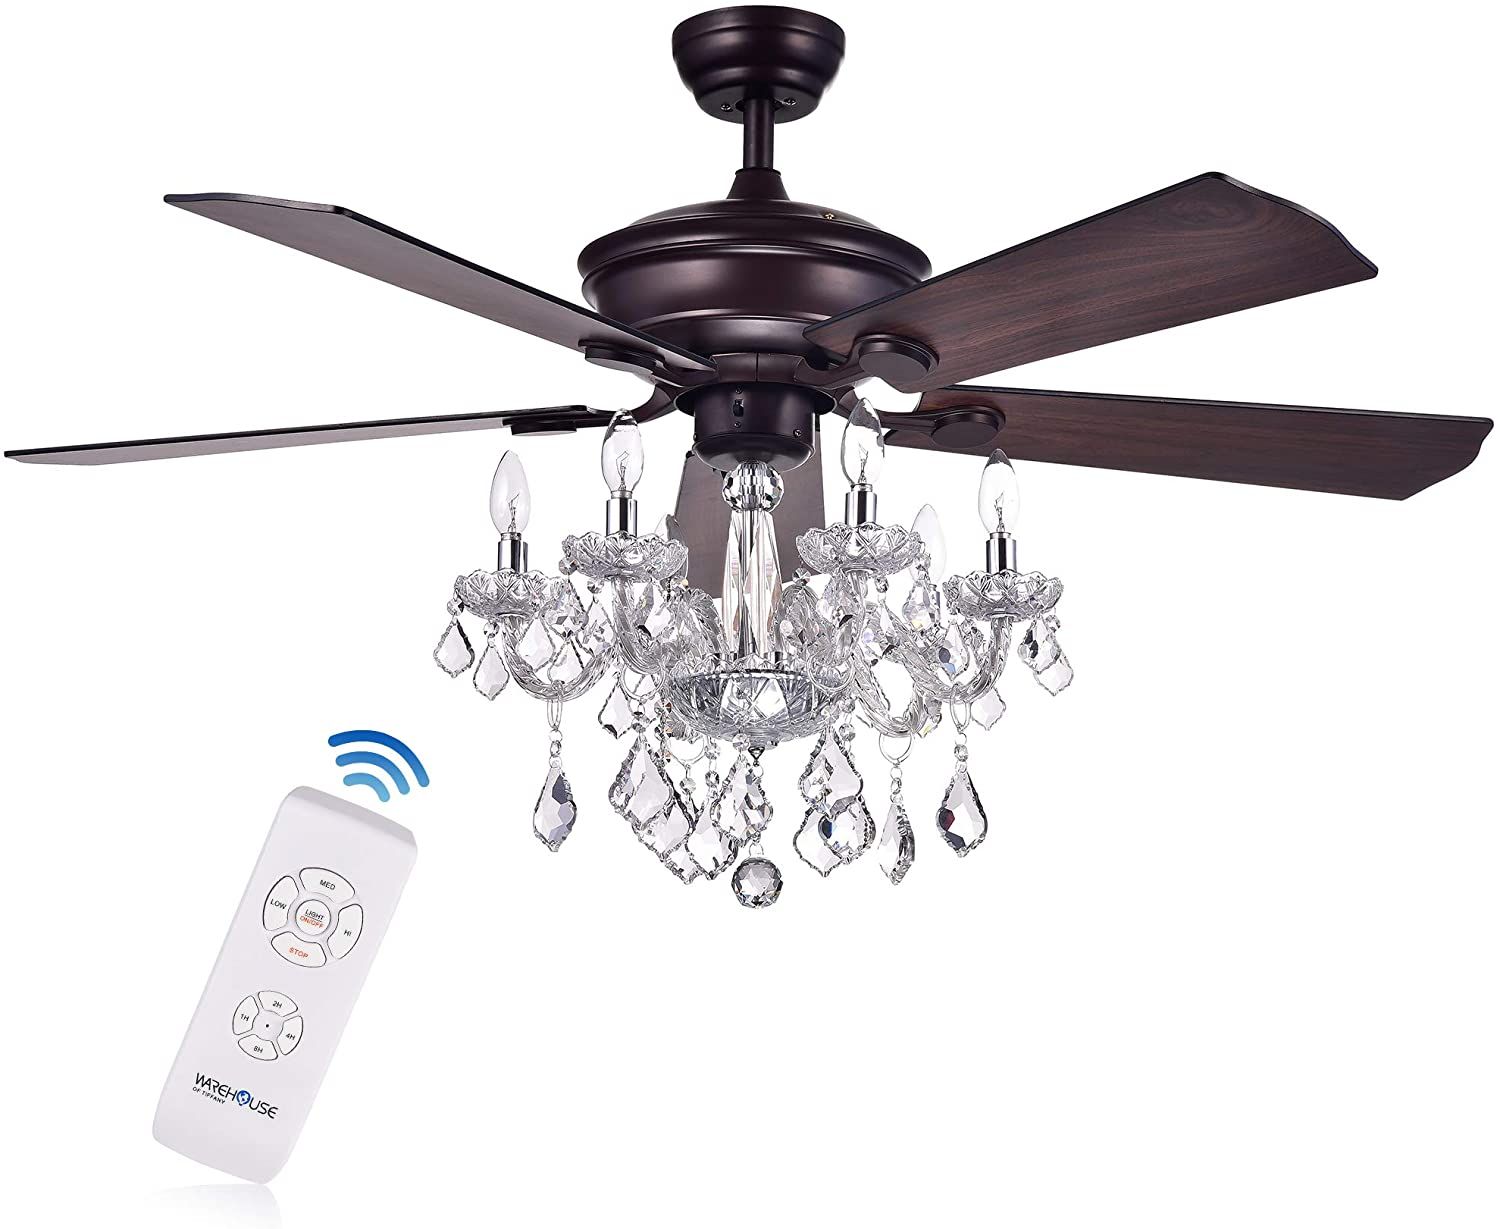 Home Accessories HACFL-8213REMO/AB Warehouse of Tiffany Havorand 52-inch 5-Blade Crystal Chandelier (Optional Remote) Ceiling Fan, Brown